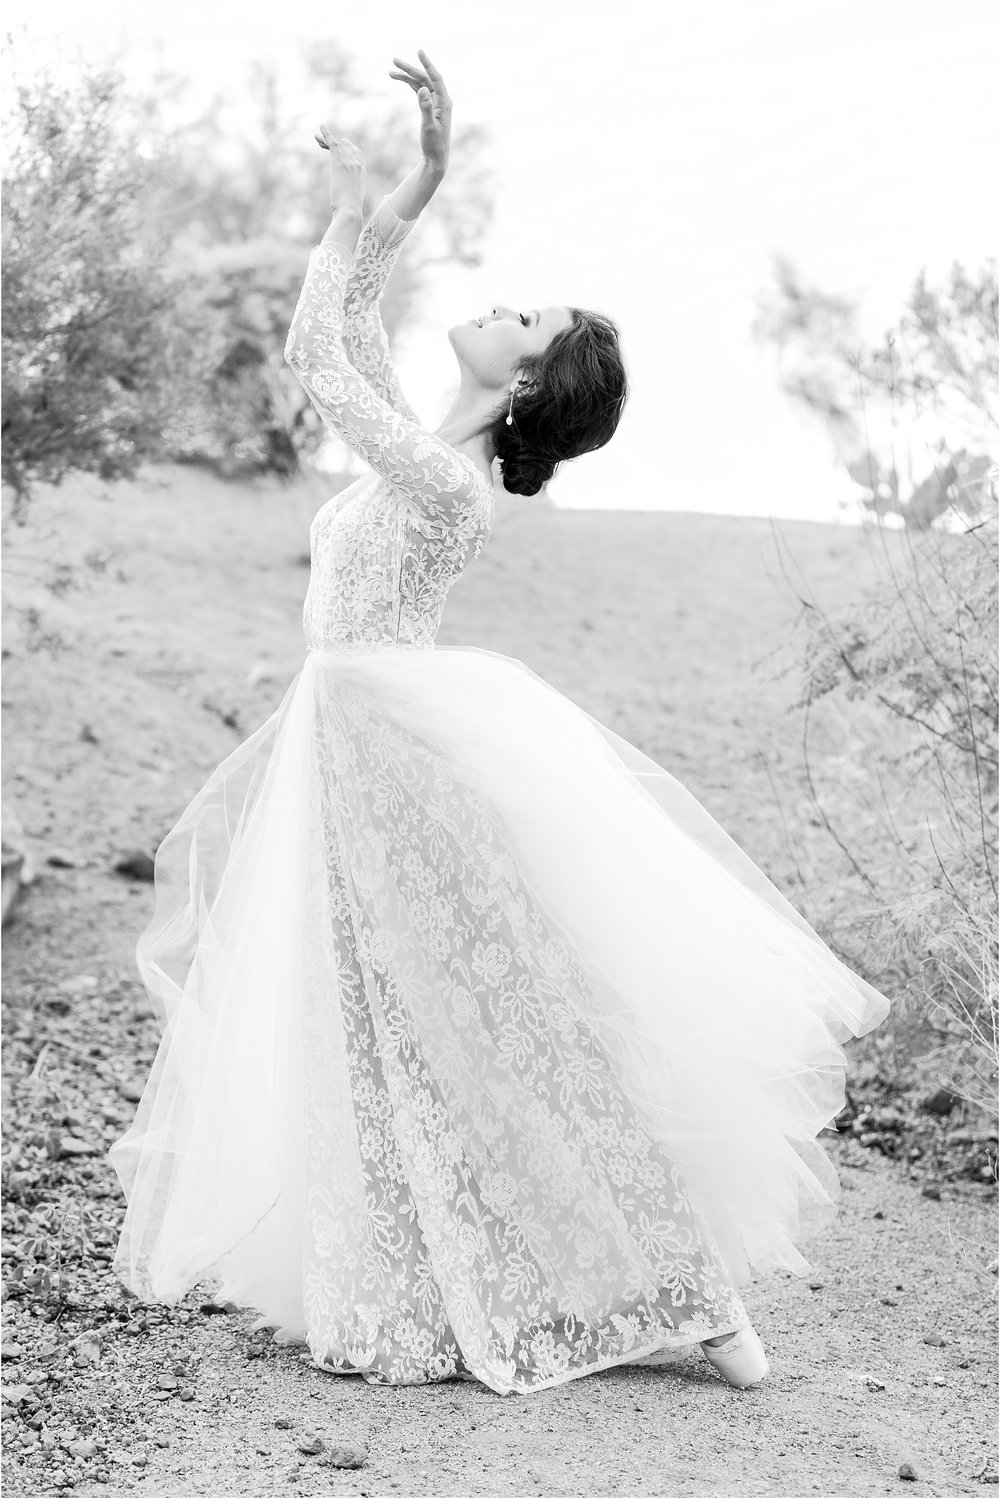 paris-and-ballerina-inspired-bride-wedding-photos-at-phoenix-marriott-tempe-at-the-buttes-in-tempe-arizona-by-courtney-carolyn-photography_0004.jpg